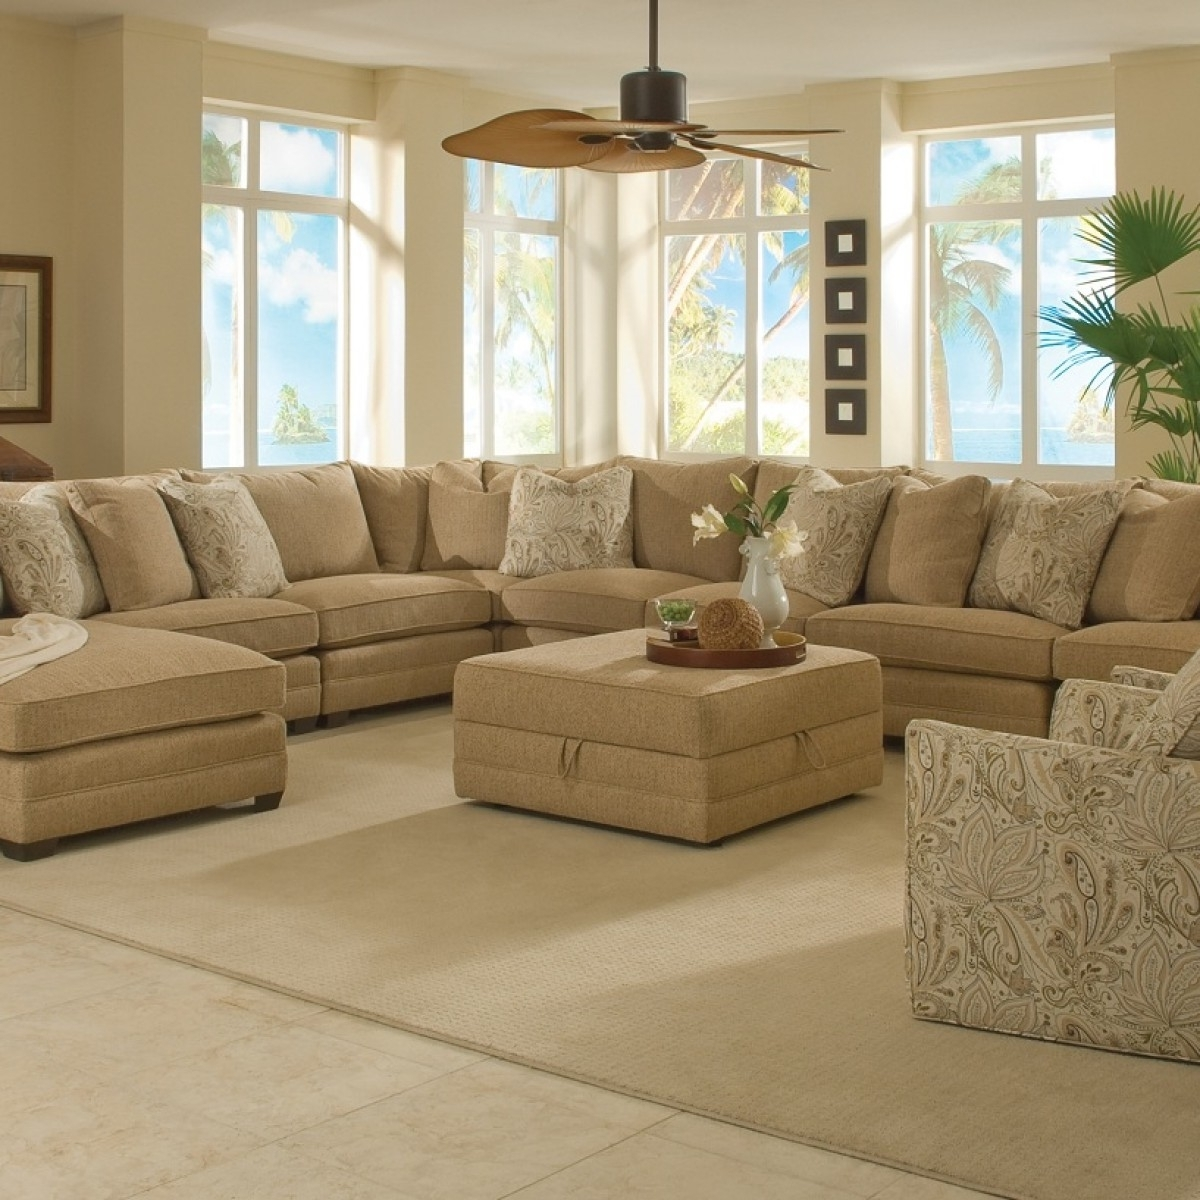 Huge Sectional Sofas – Tourdecarroll In Well Liked Joss And Main Sectional Sofas (View 11 of 15)